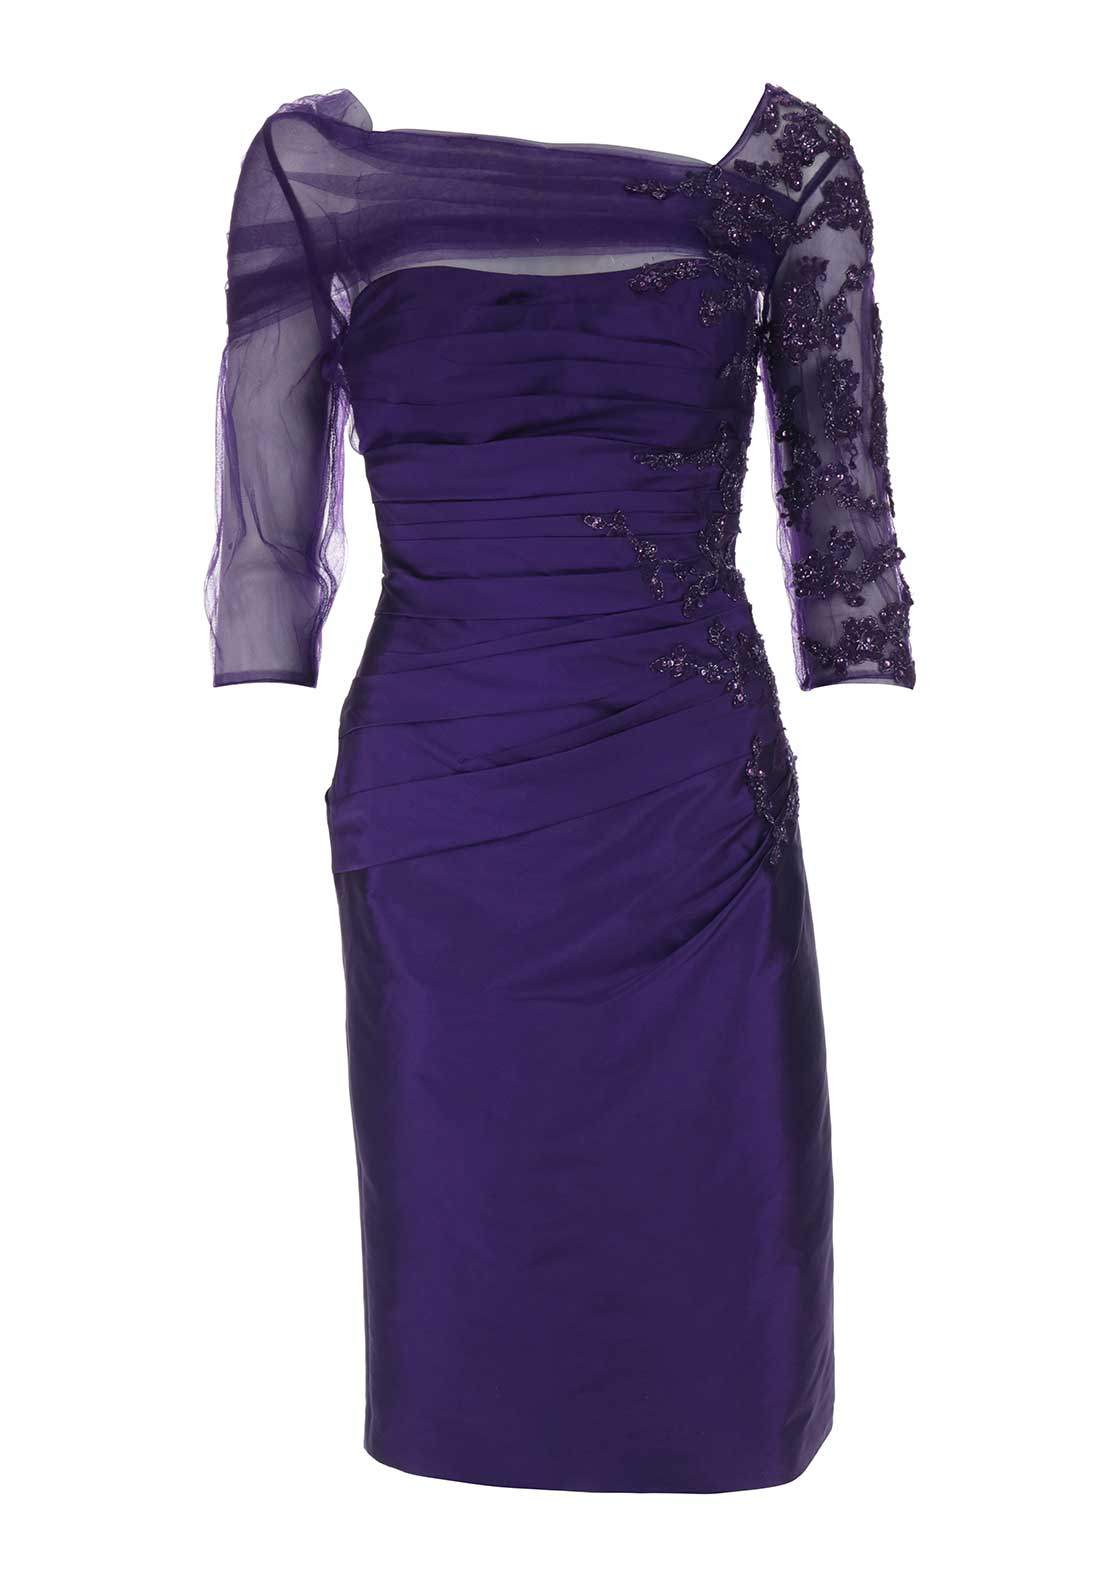 Irresistible Embellished Pencil Dress, Purple